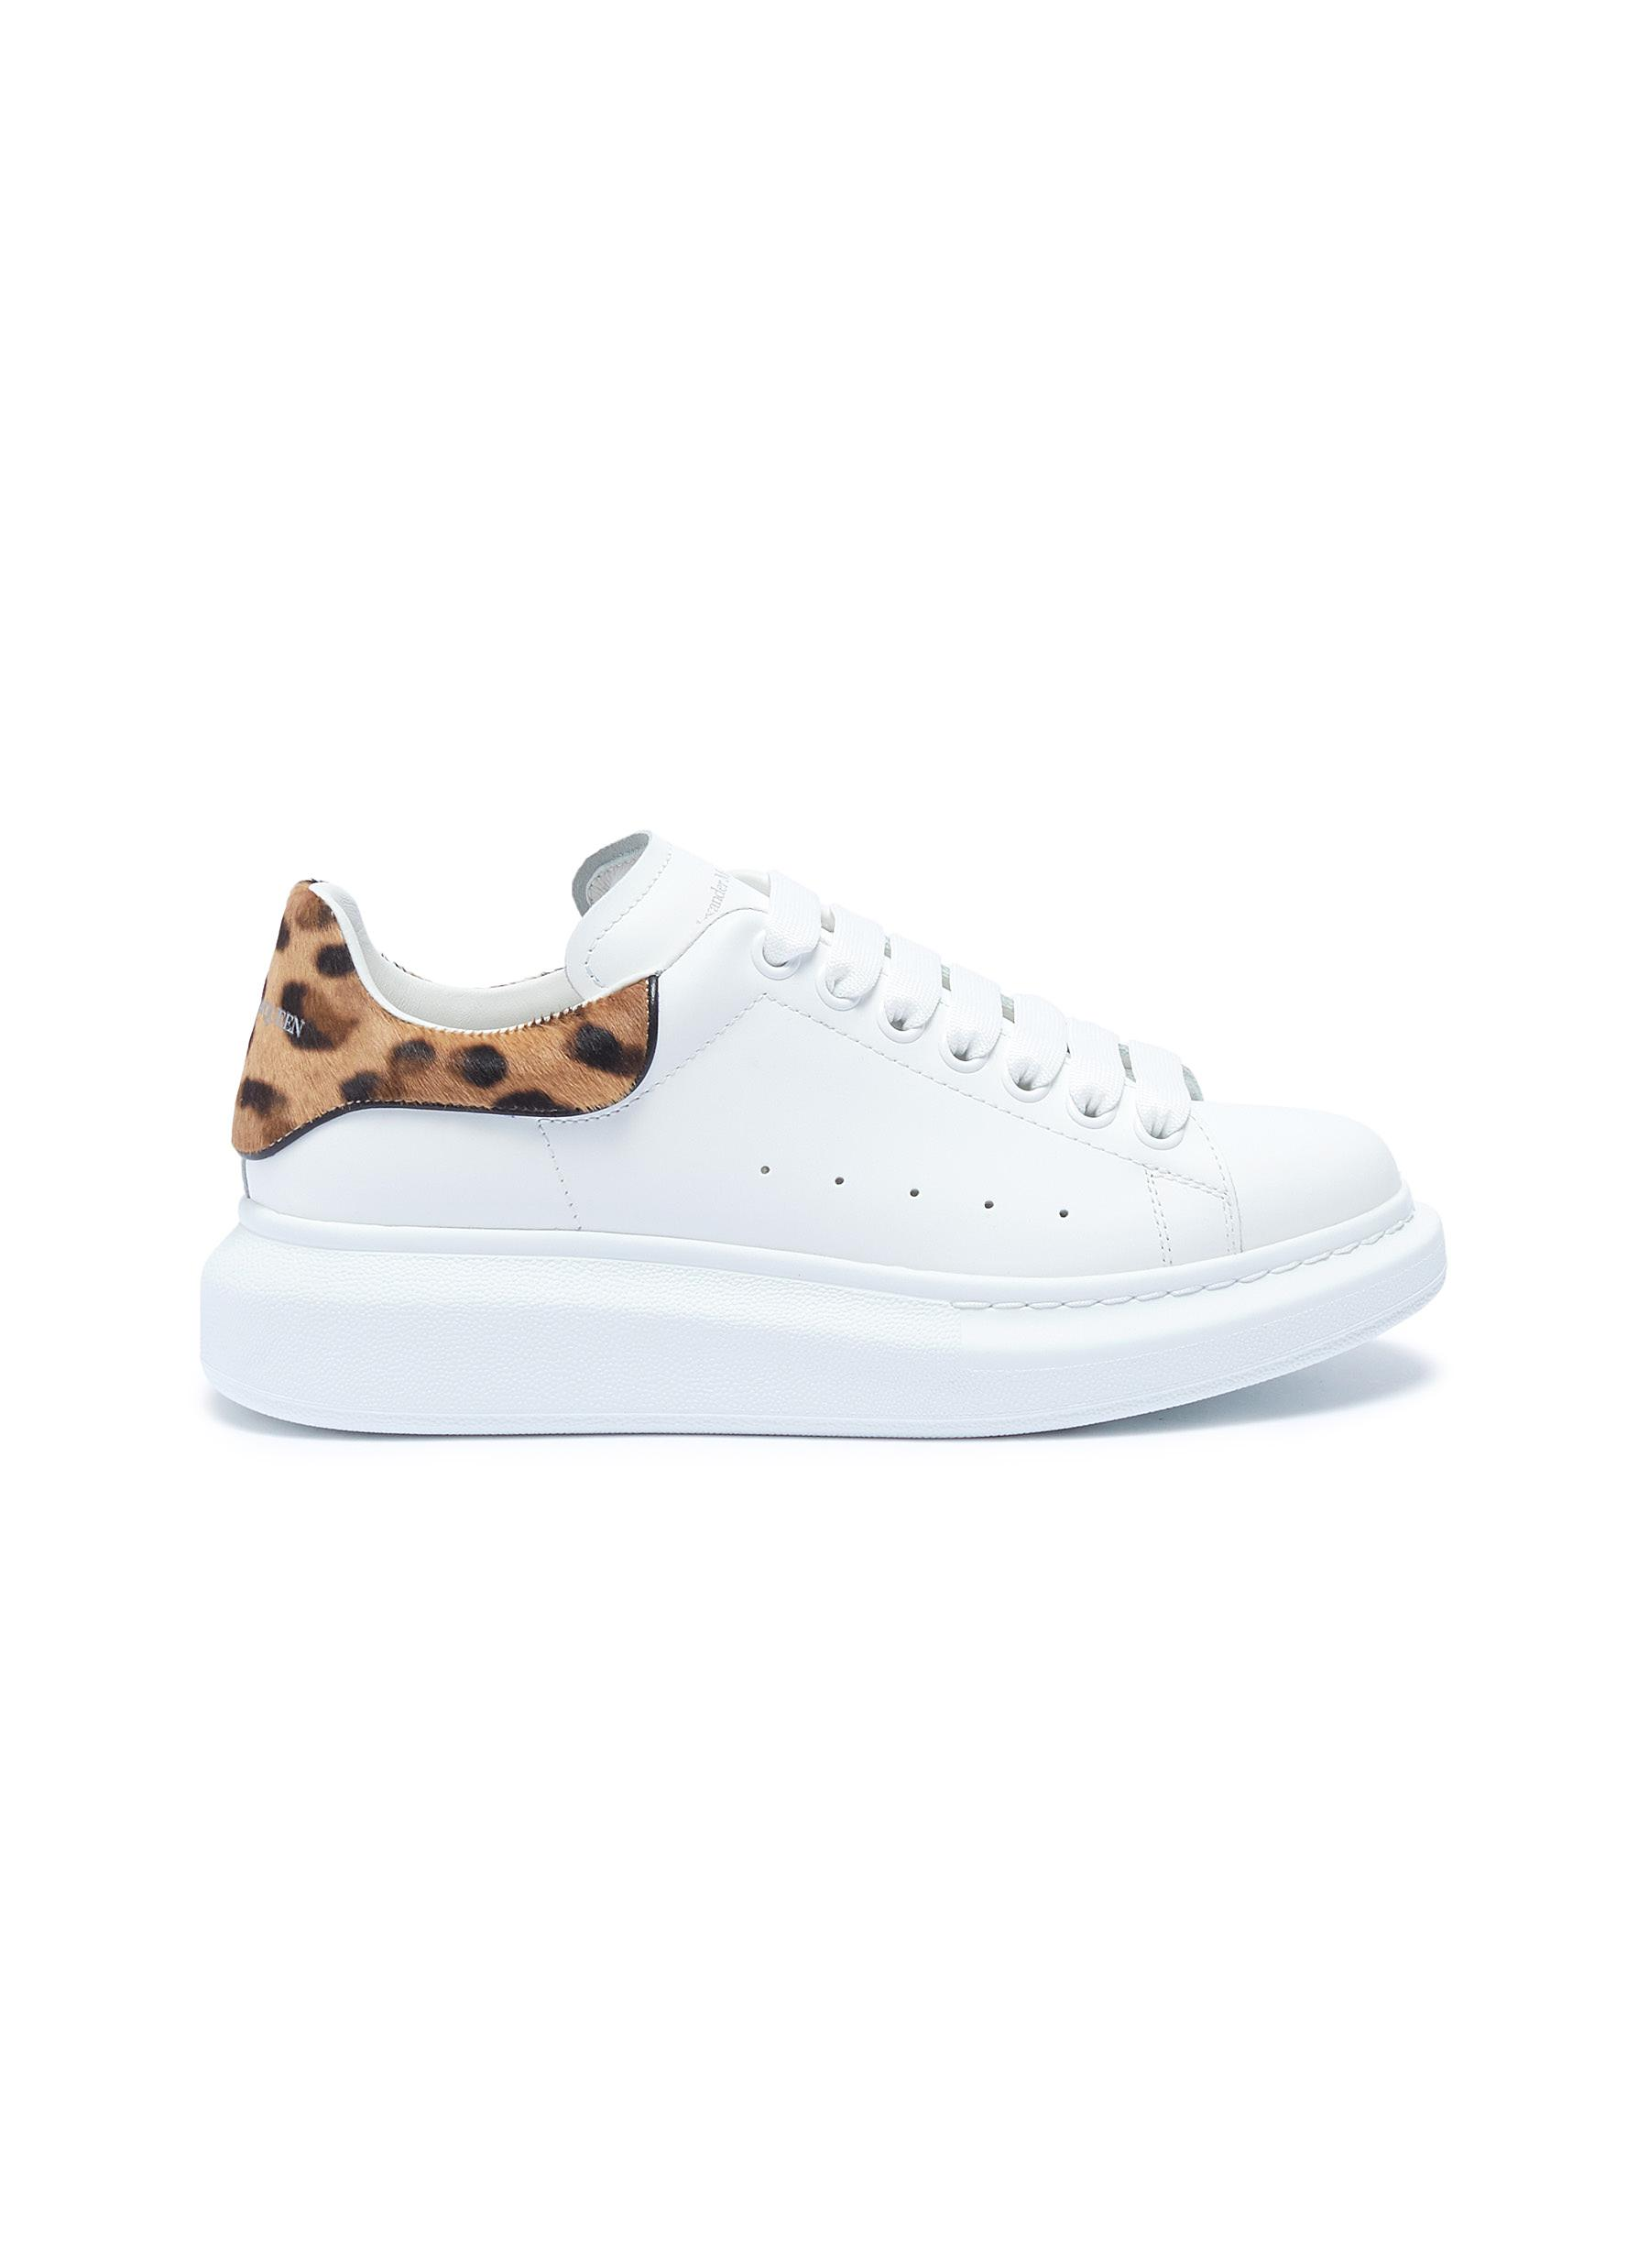 Oversized Sneakers in leather with leopard print ponyhair collar by Alexander Mcqueen